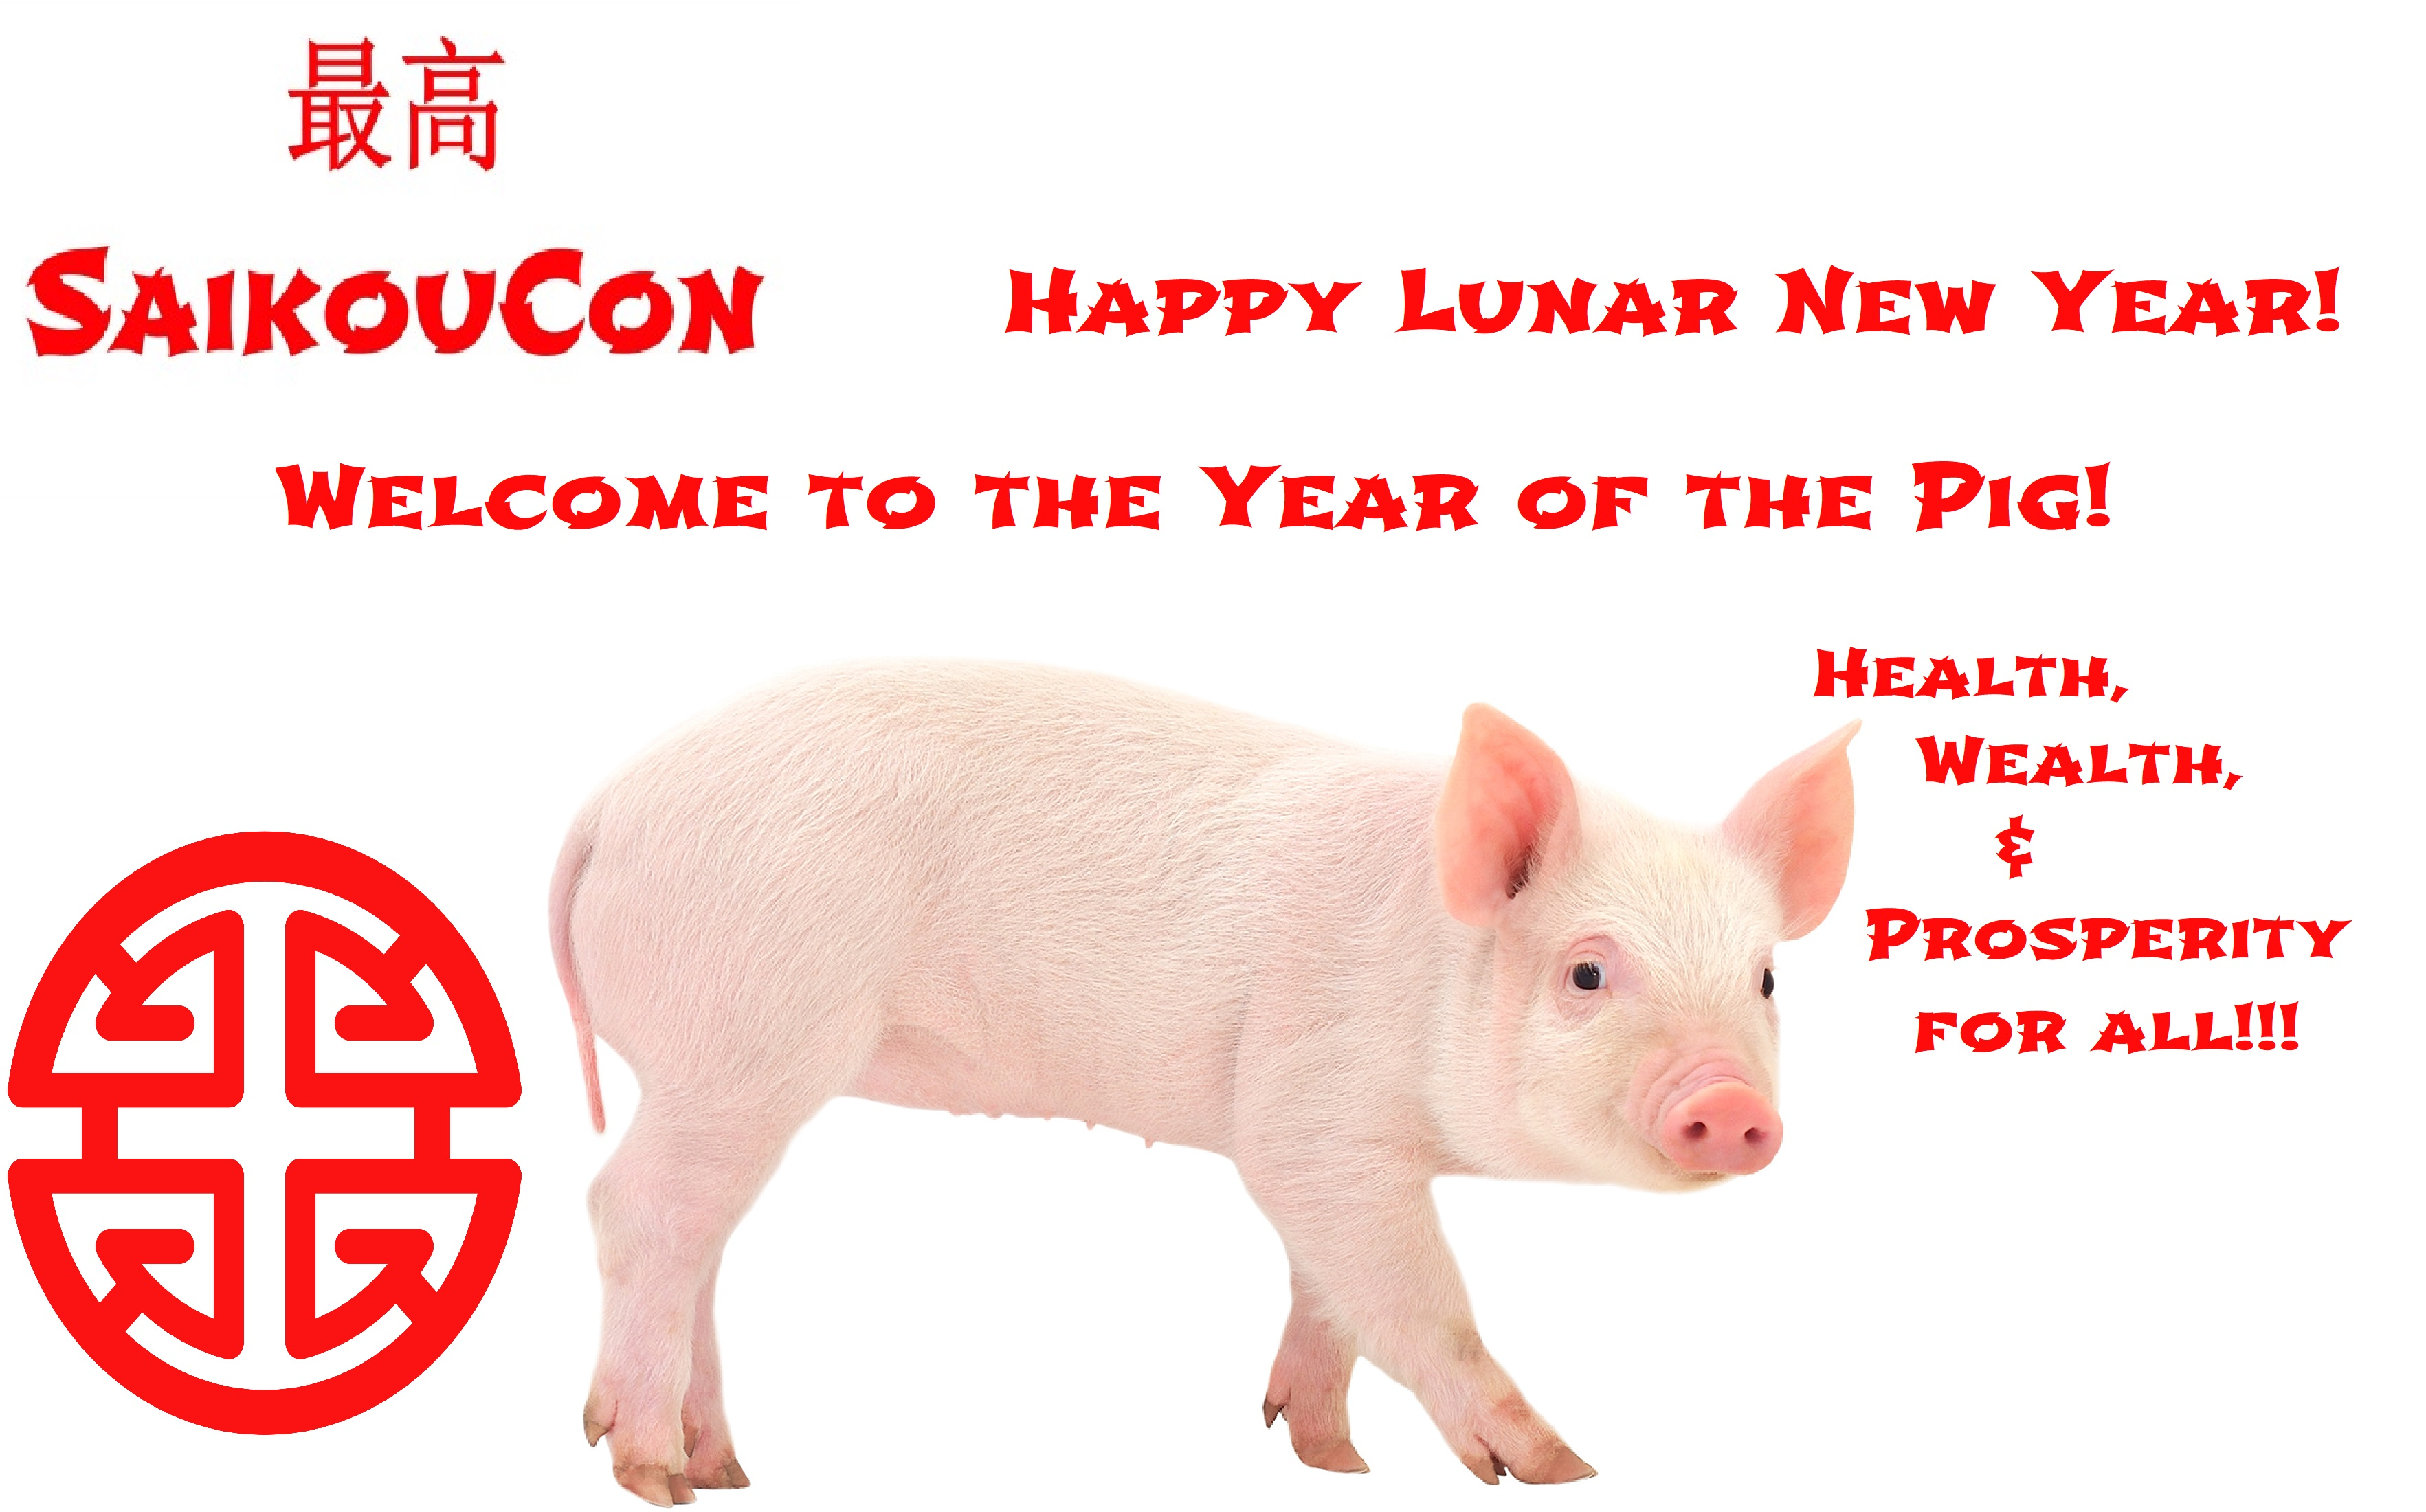 Happy Lunar New Year from SaikouCon